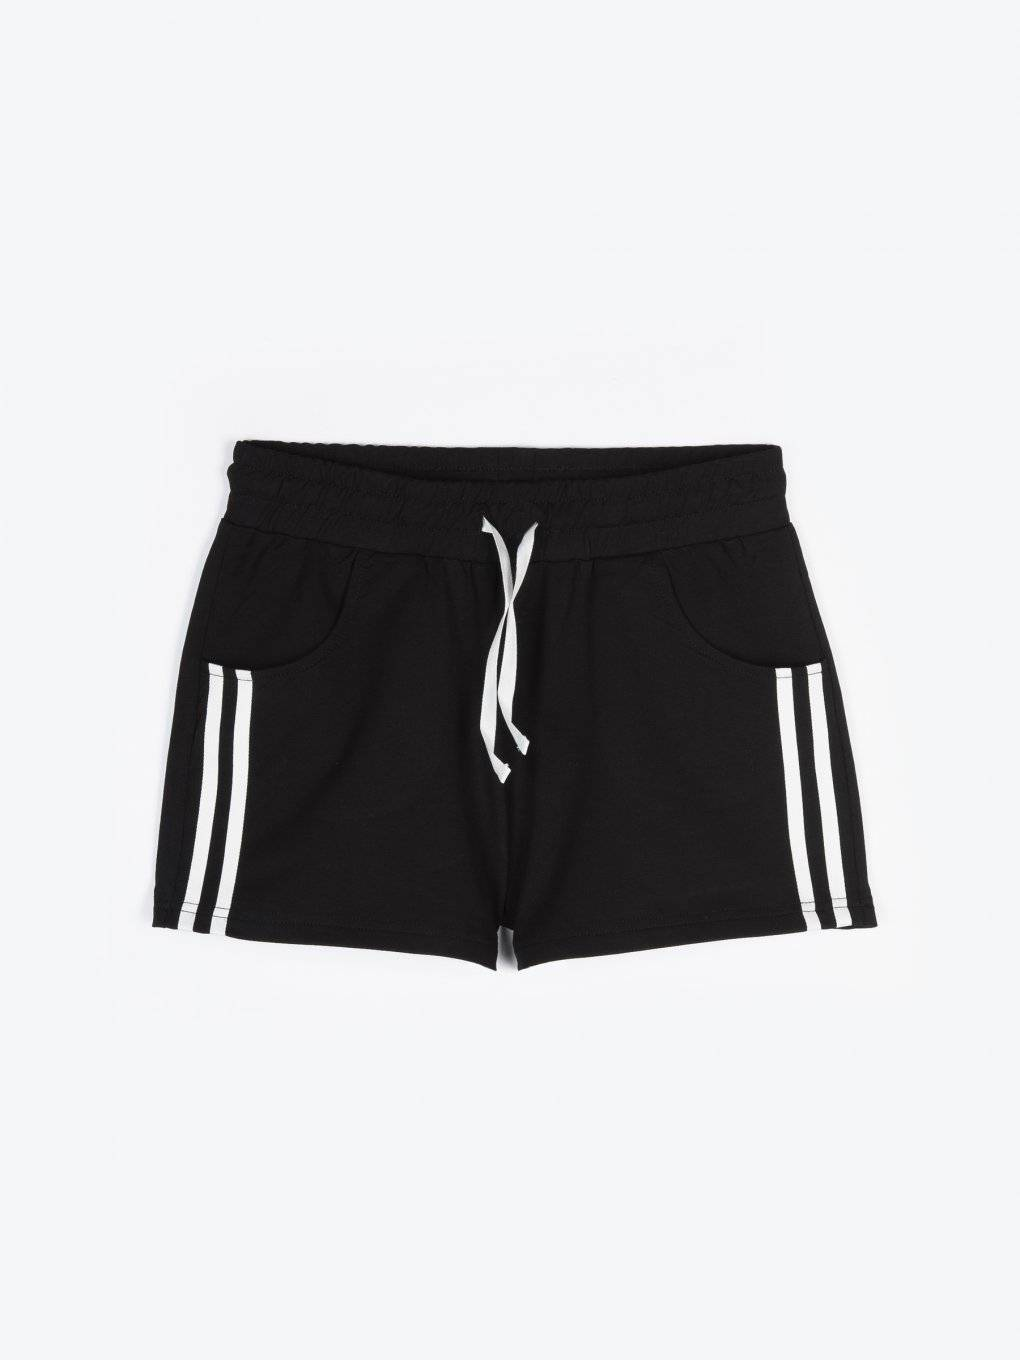 Sweatshorts with pockets